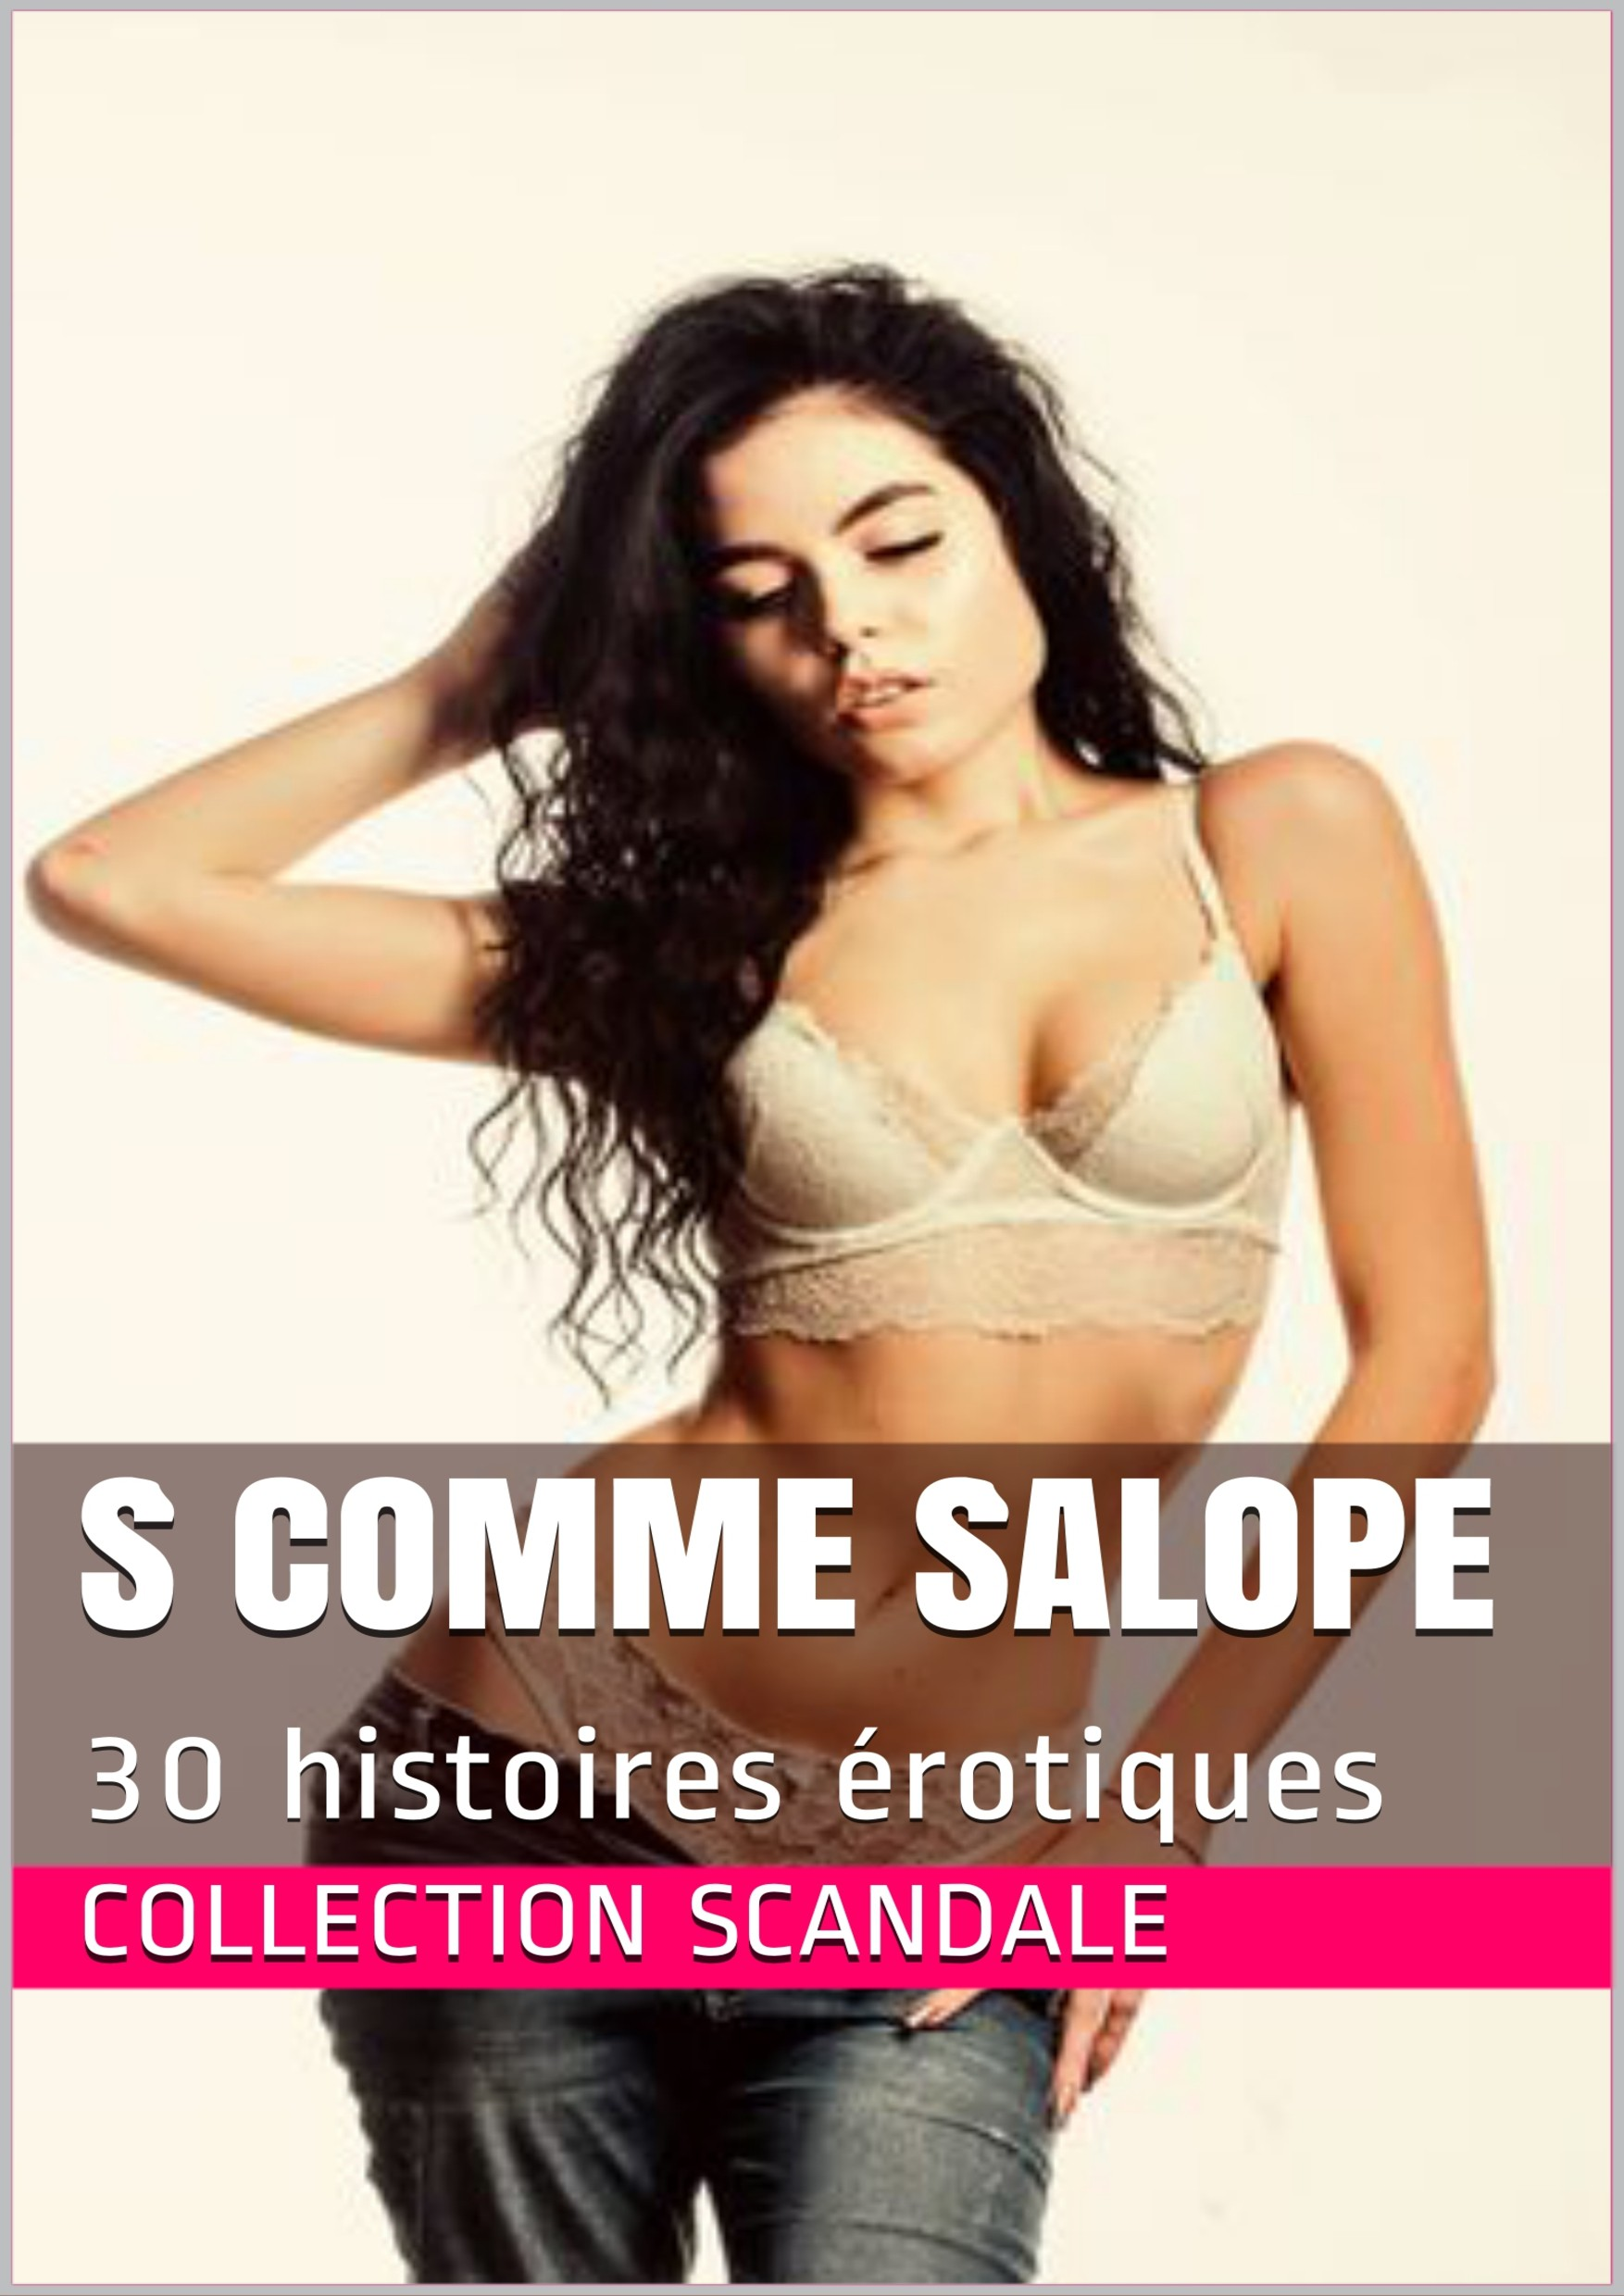 S comme Salope